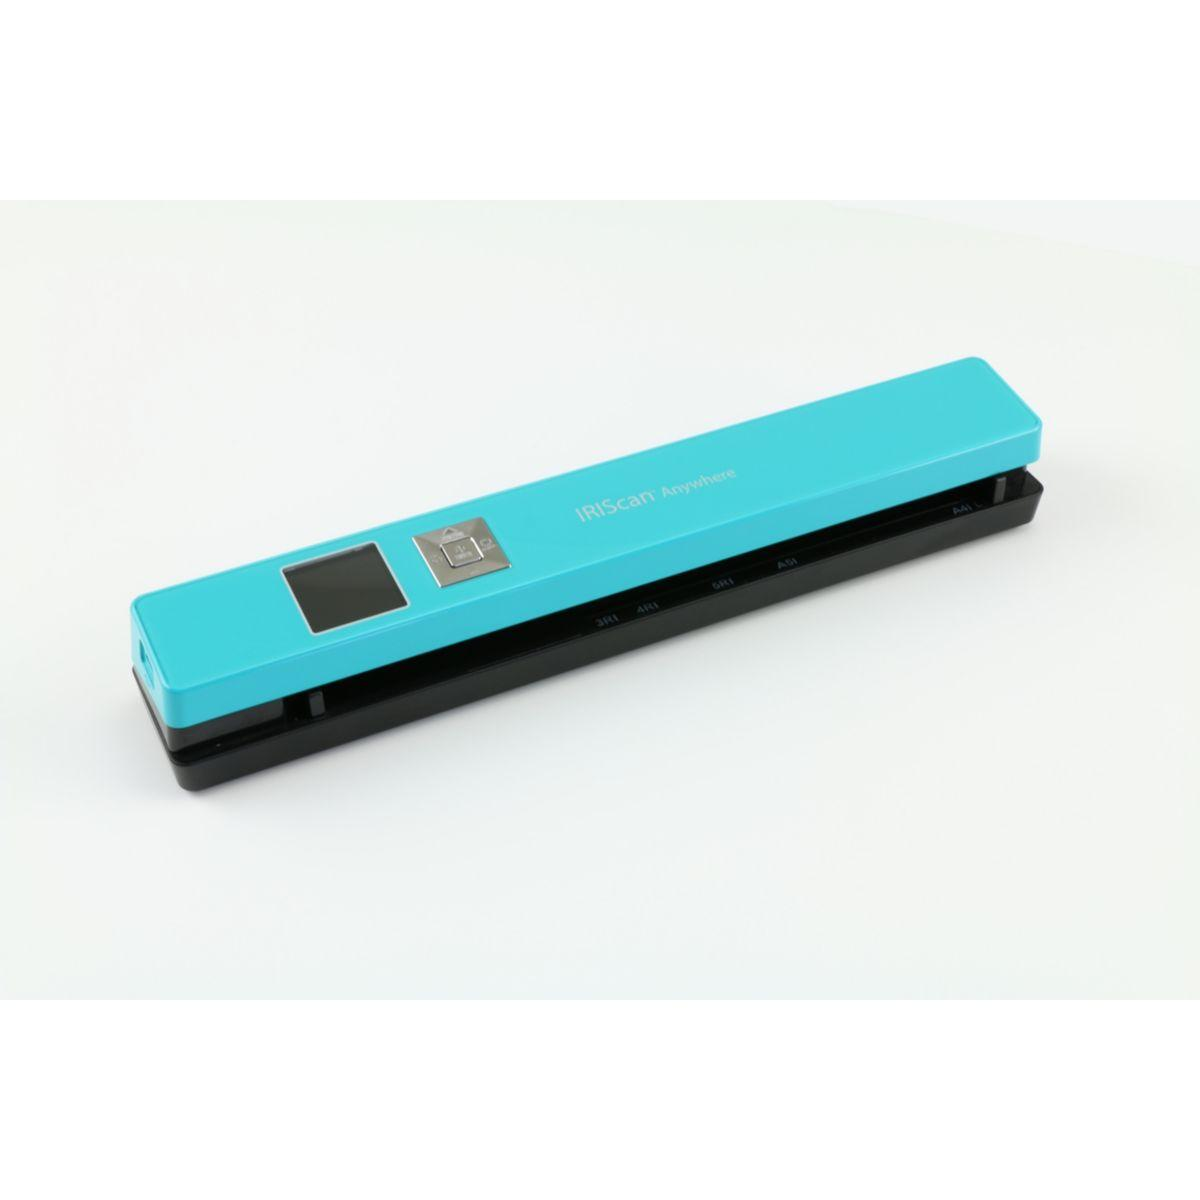 Scanner portable iris iriscan anywhere 5 turquoise - 7% de rem...